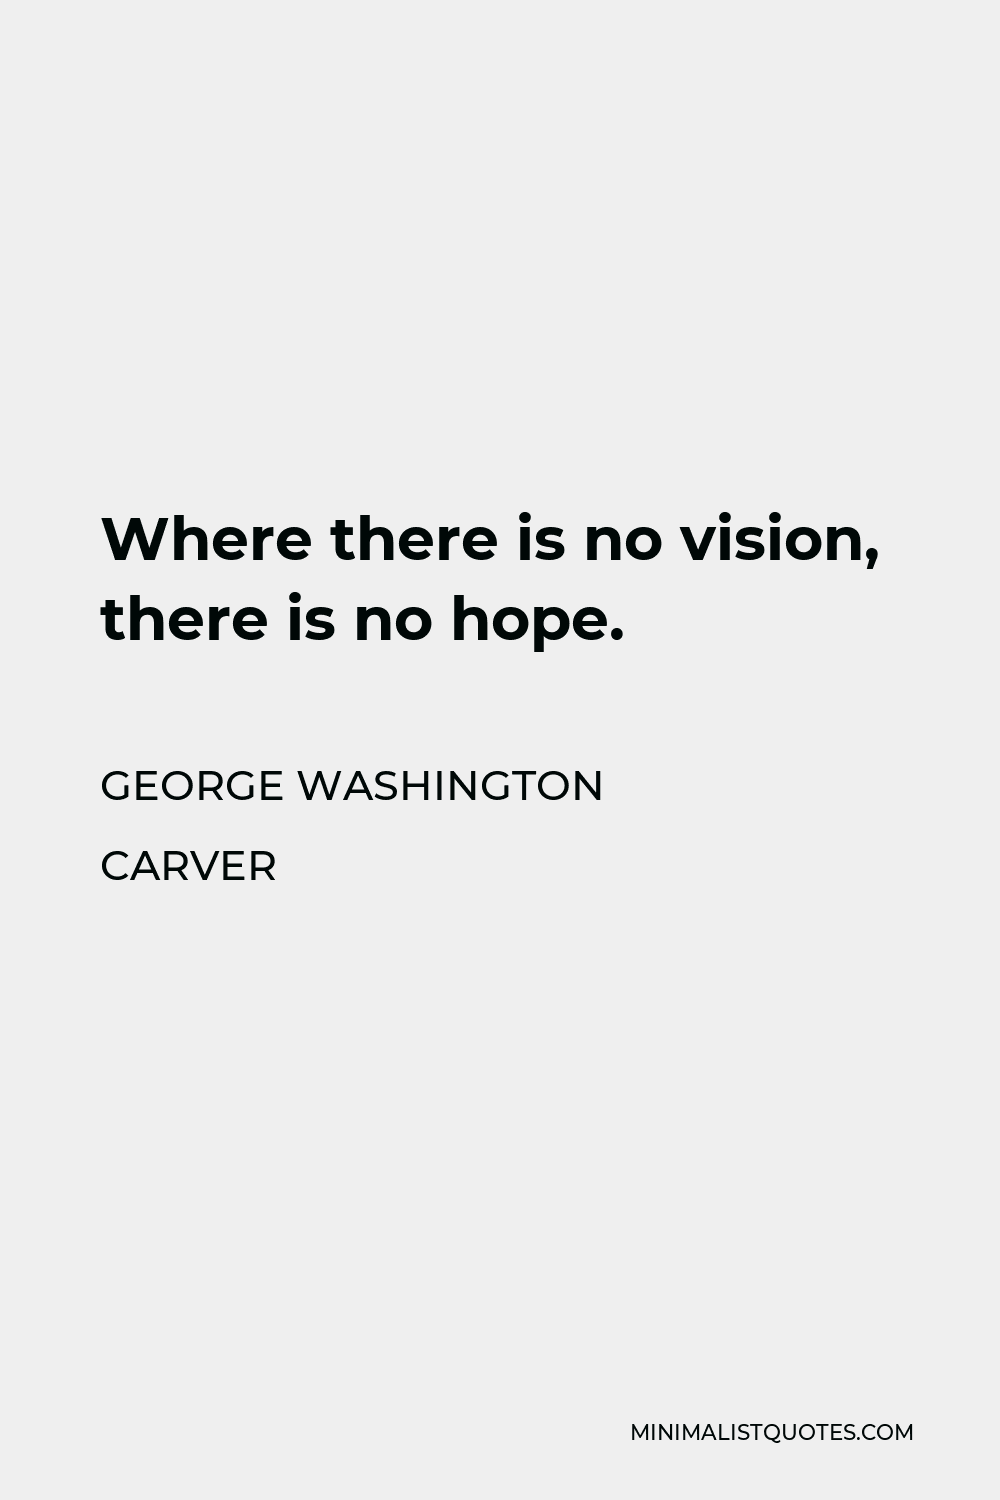 George Washington Carver Quote - Where there is no vision, there is no hope.